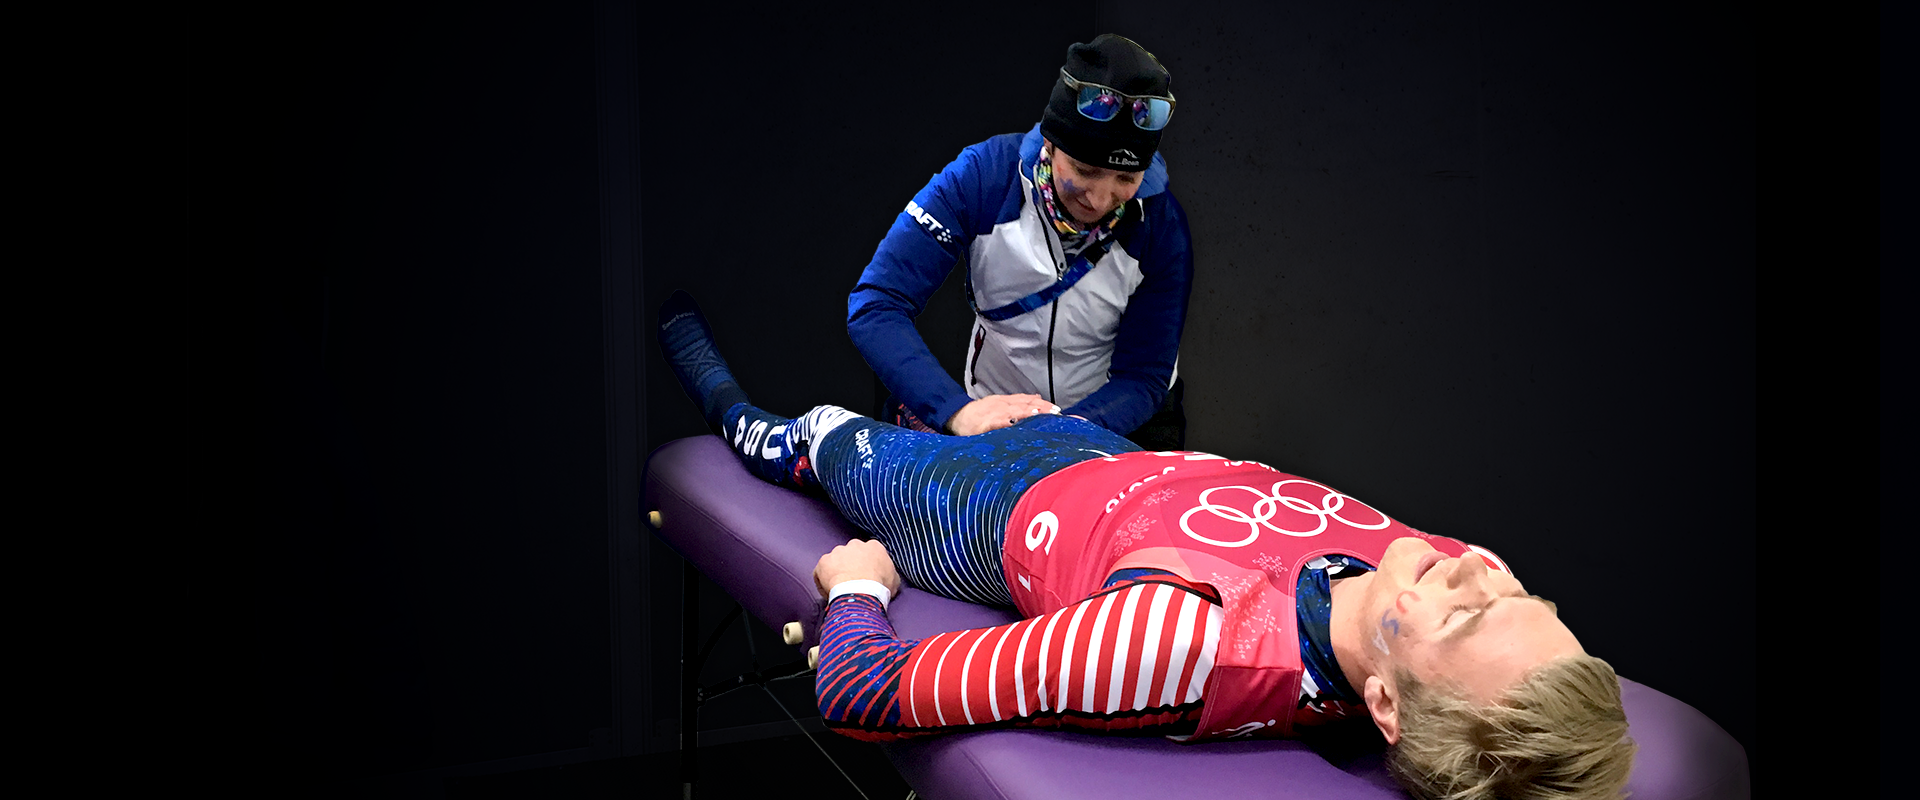 Zuzana Rogers works on US athletes at the Pyeongchang Olympic Games.